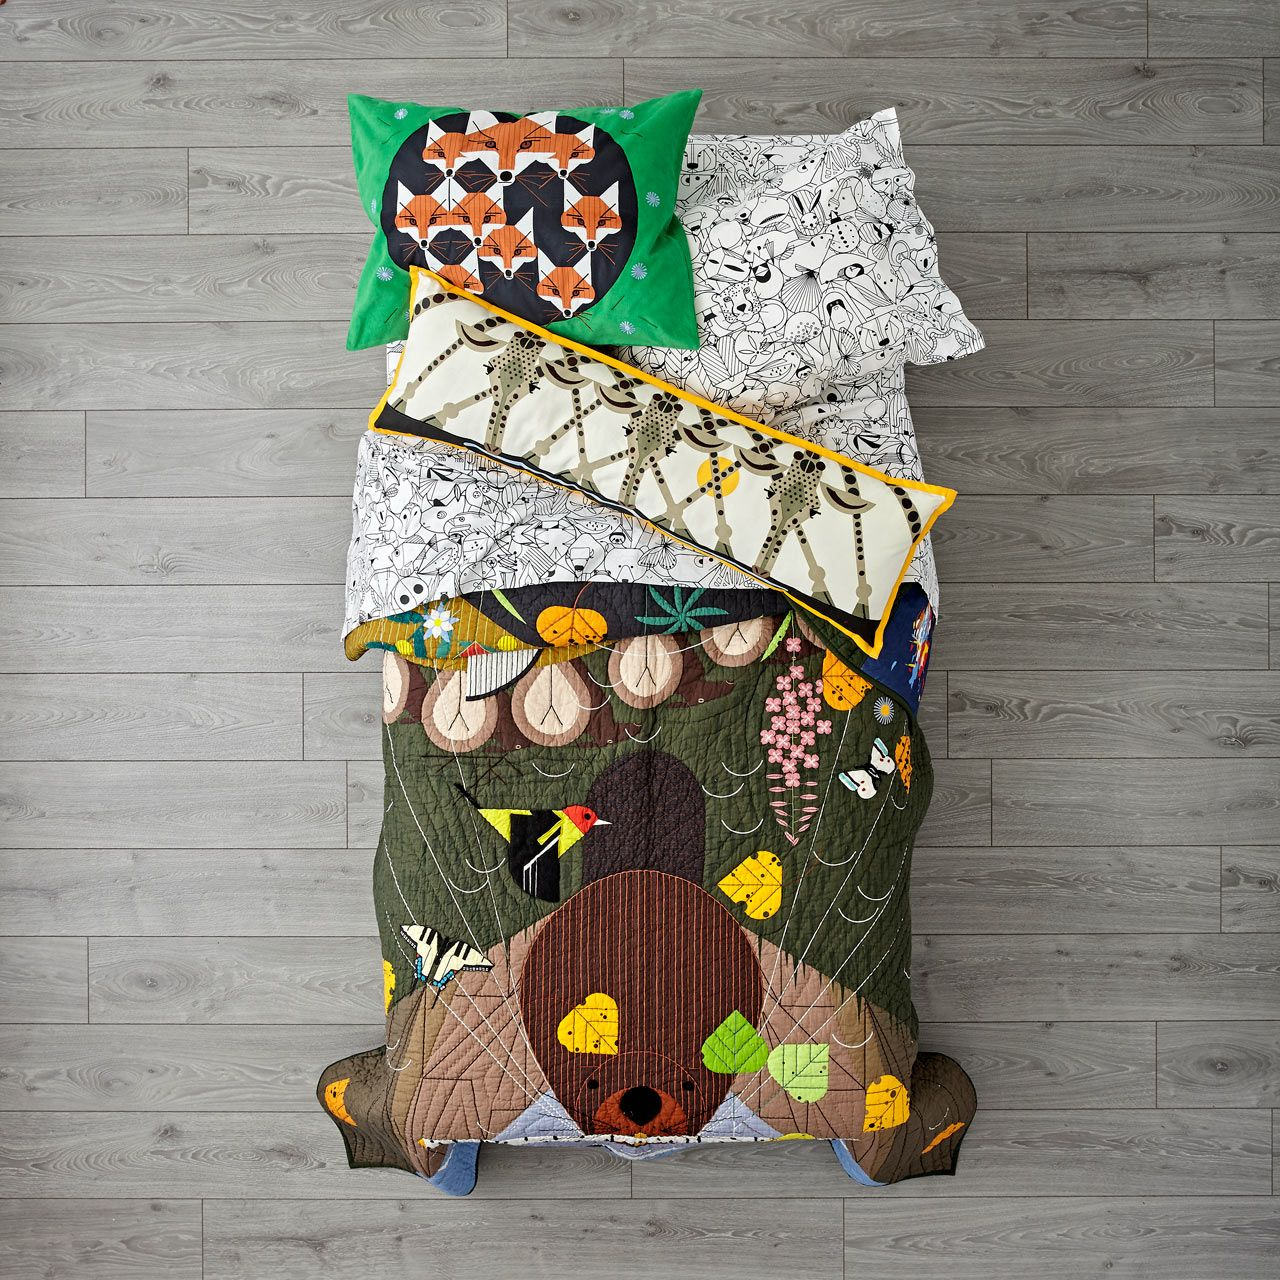 The Land of Nod launches new bedding, pillows, rugs, storage, lighting, shower curtains, and more, featuring Charley Harper's nature-inspired illustrations.